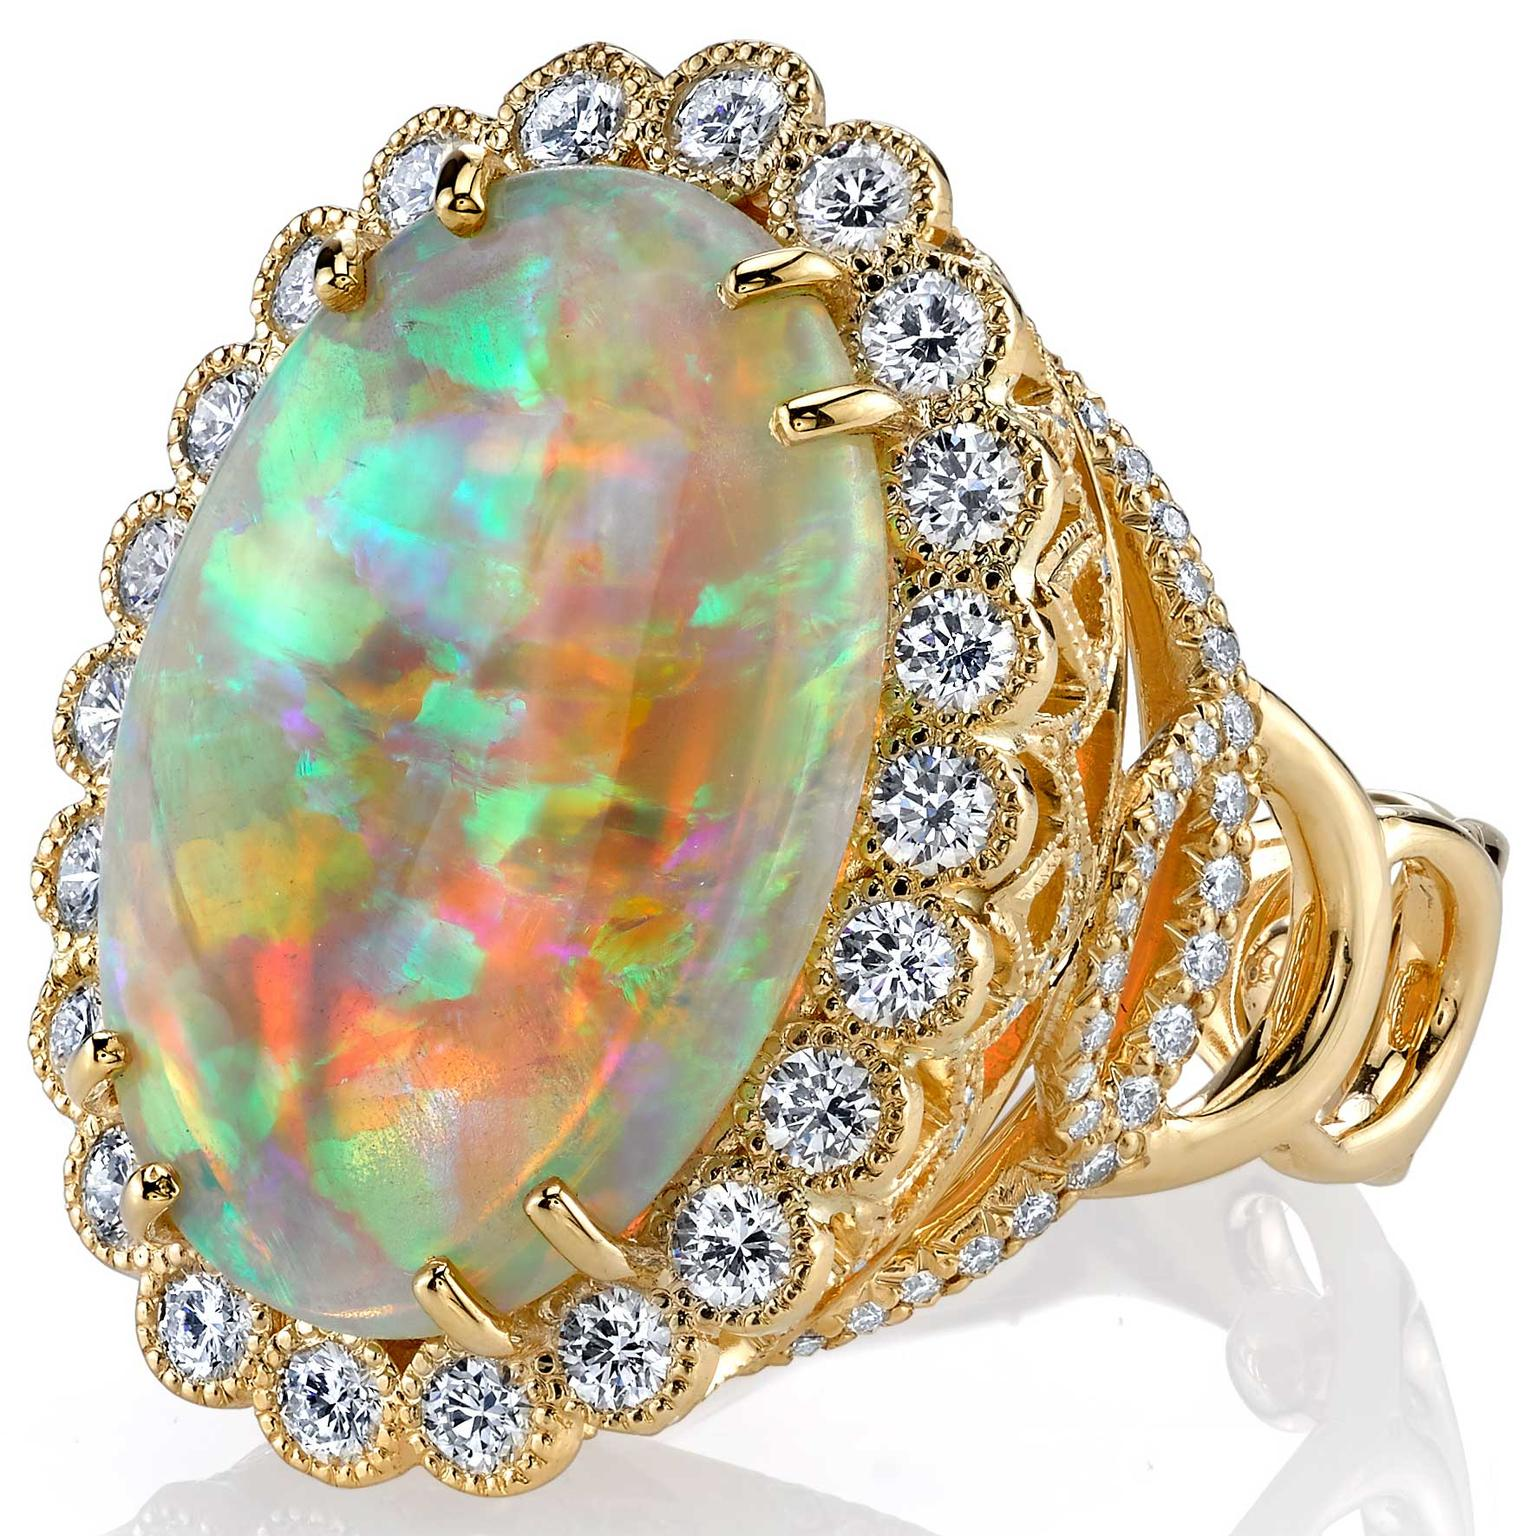 Erica-Courtney-opal-ring